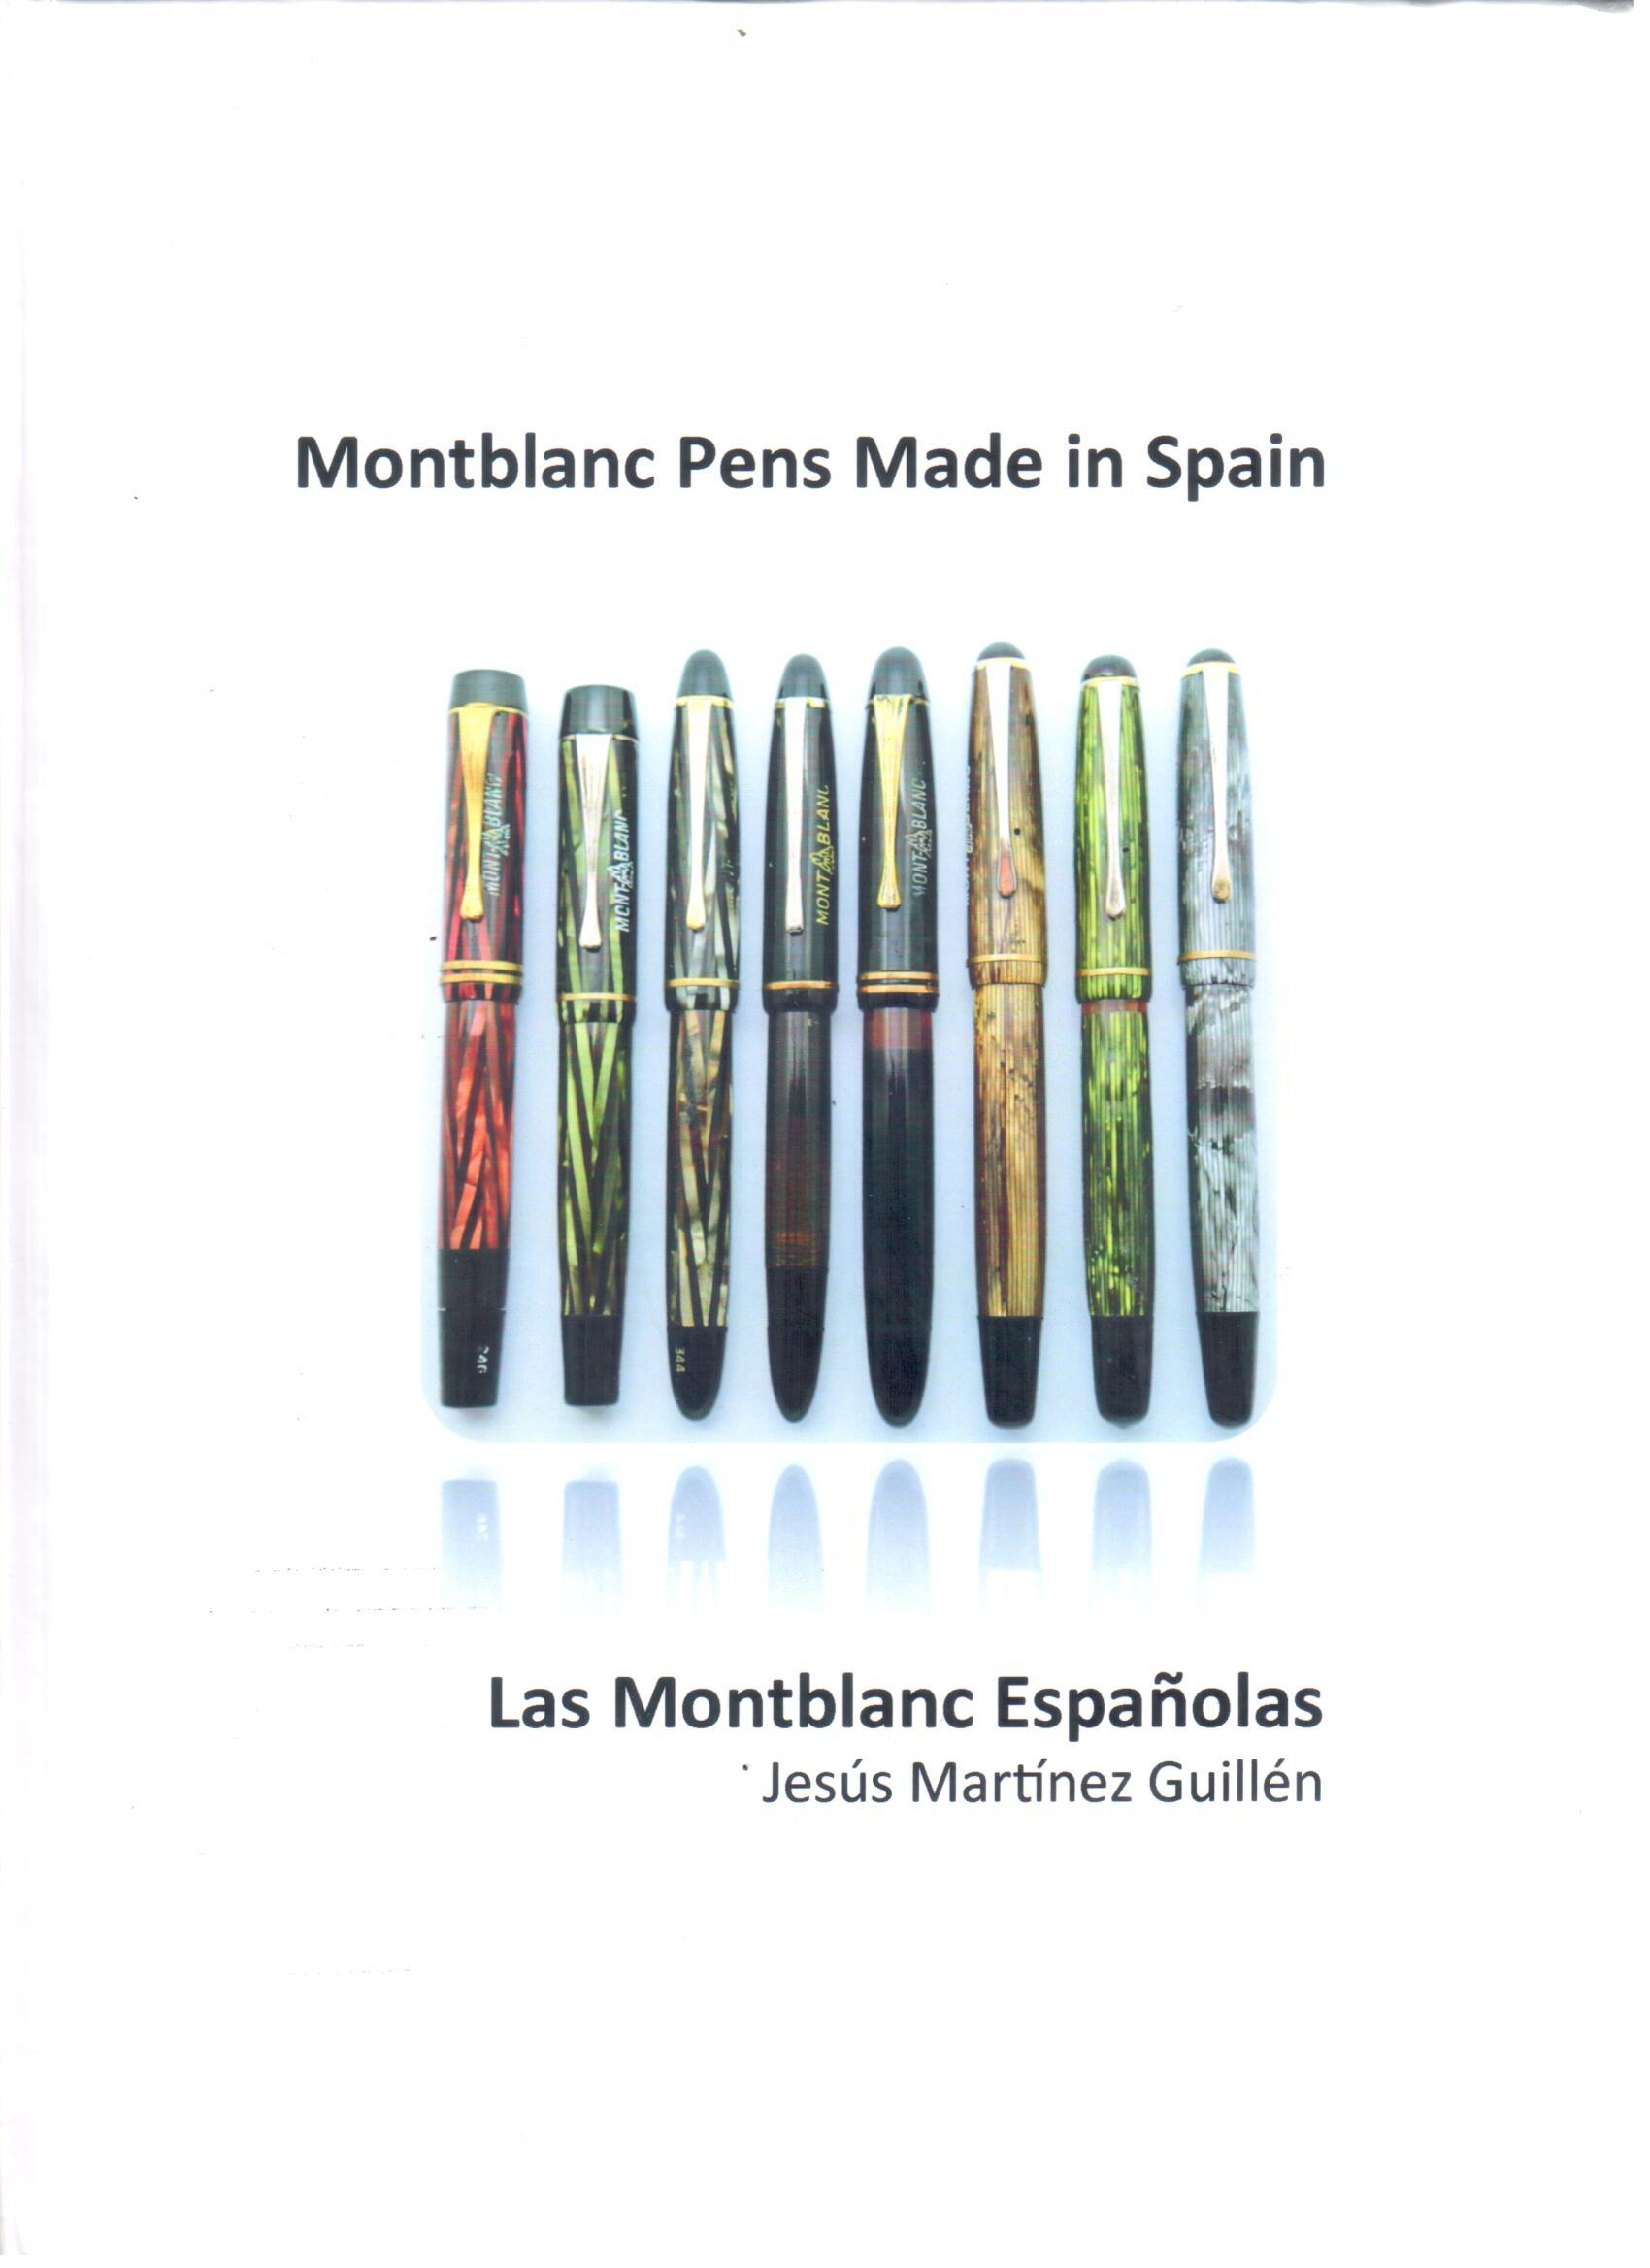 Montblanc Pens Made in Spain